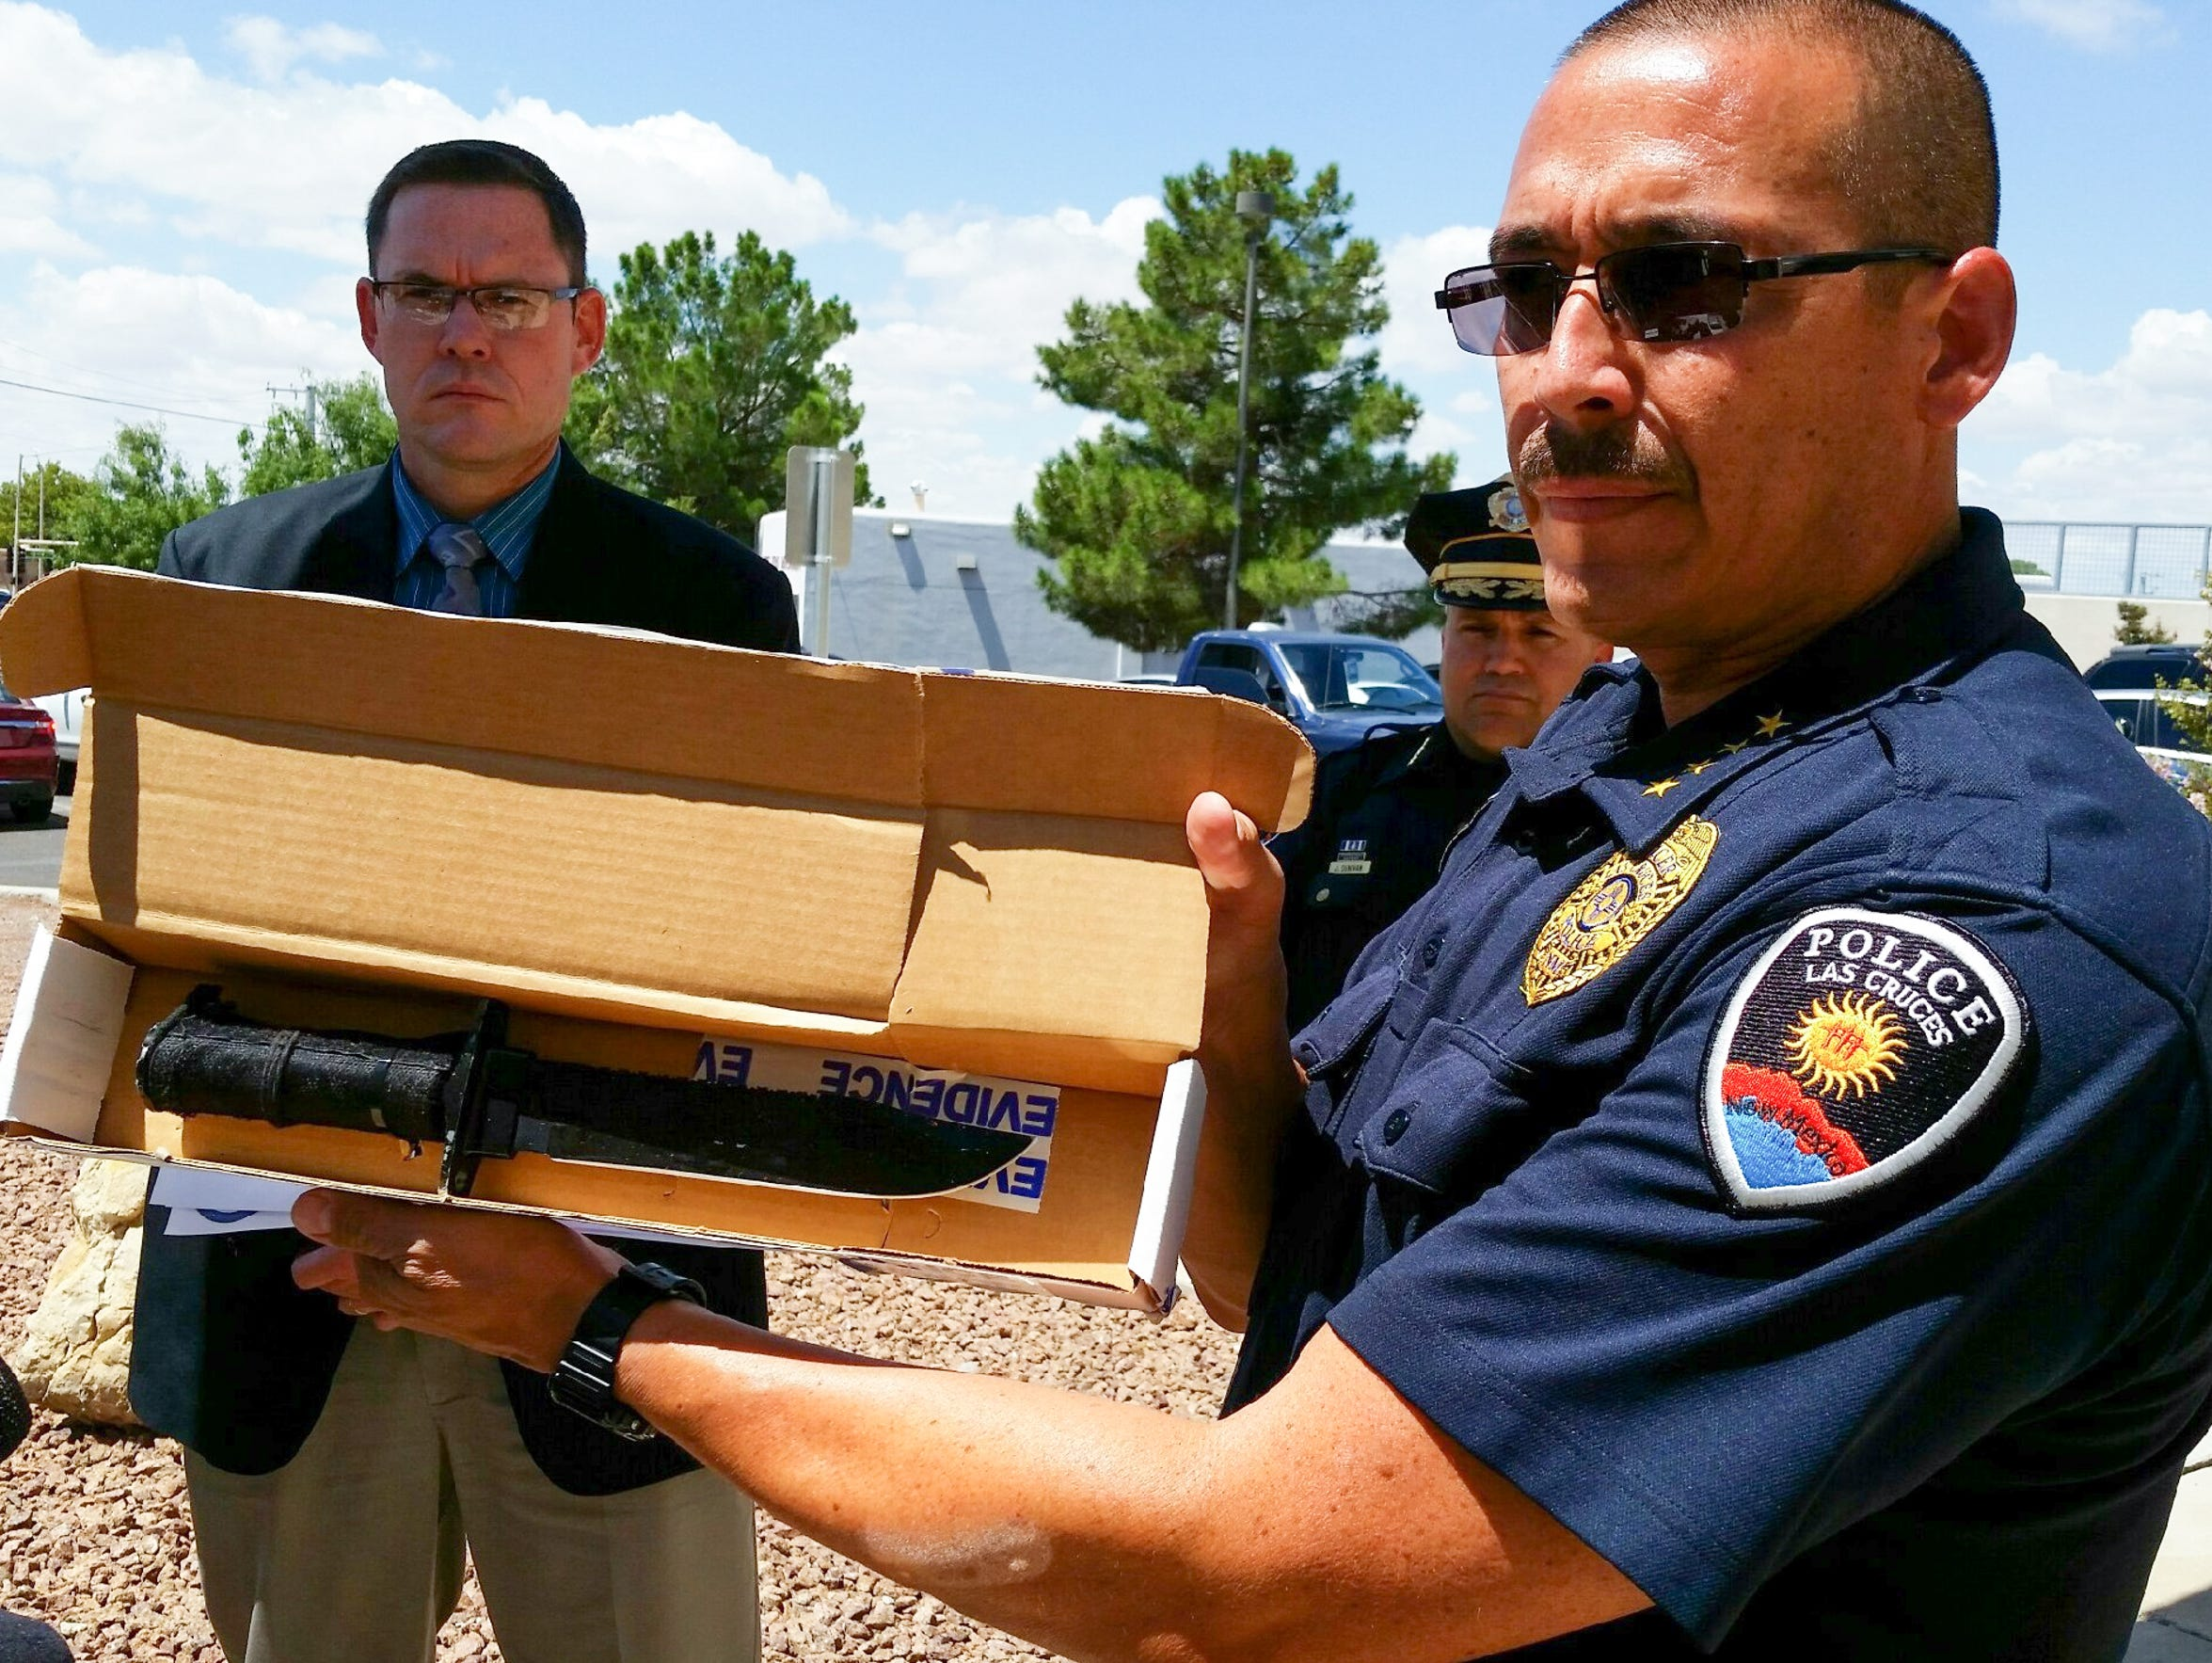 During a news conference, Las Cruces Police Chief Jaime